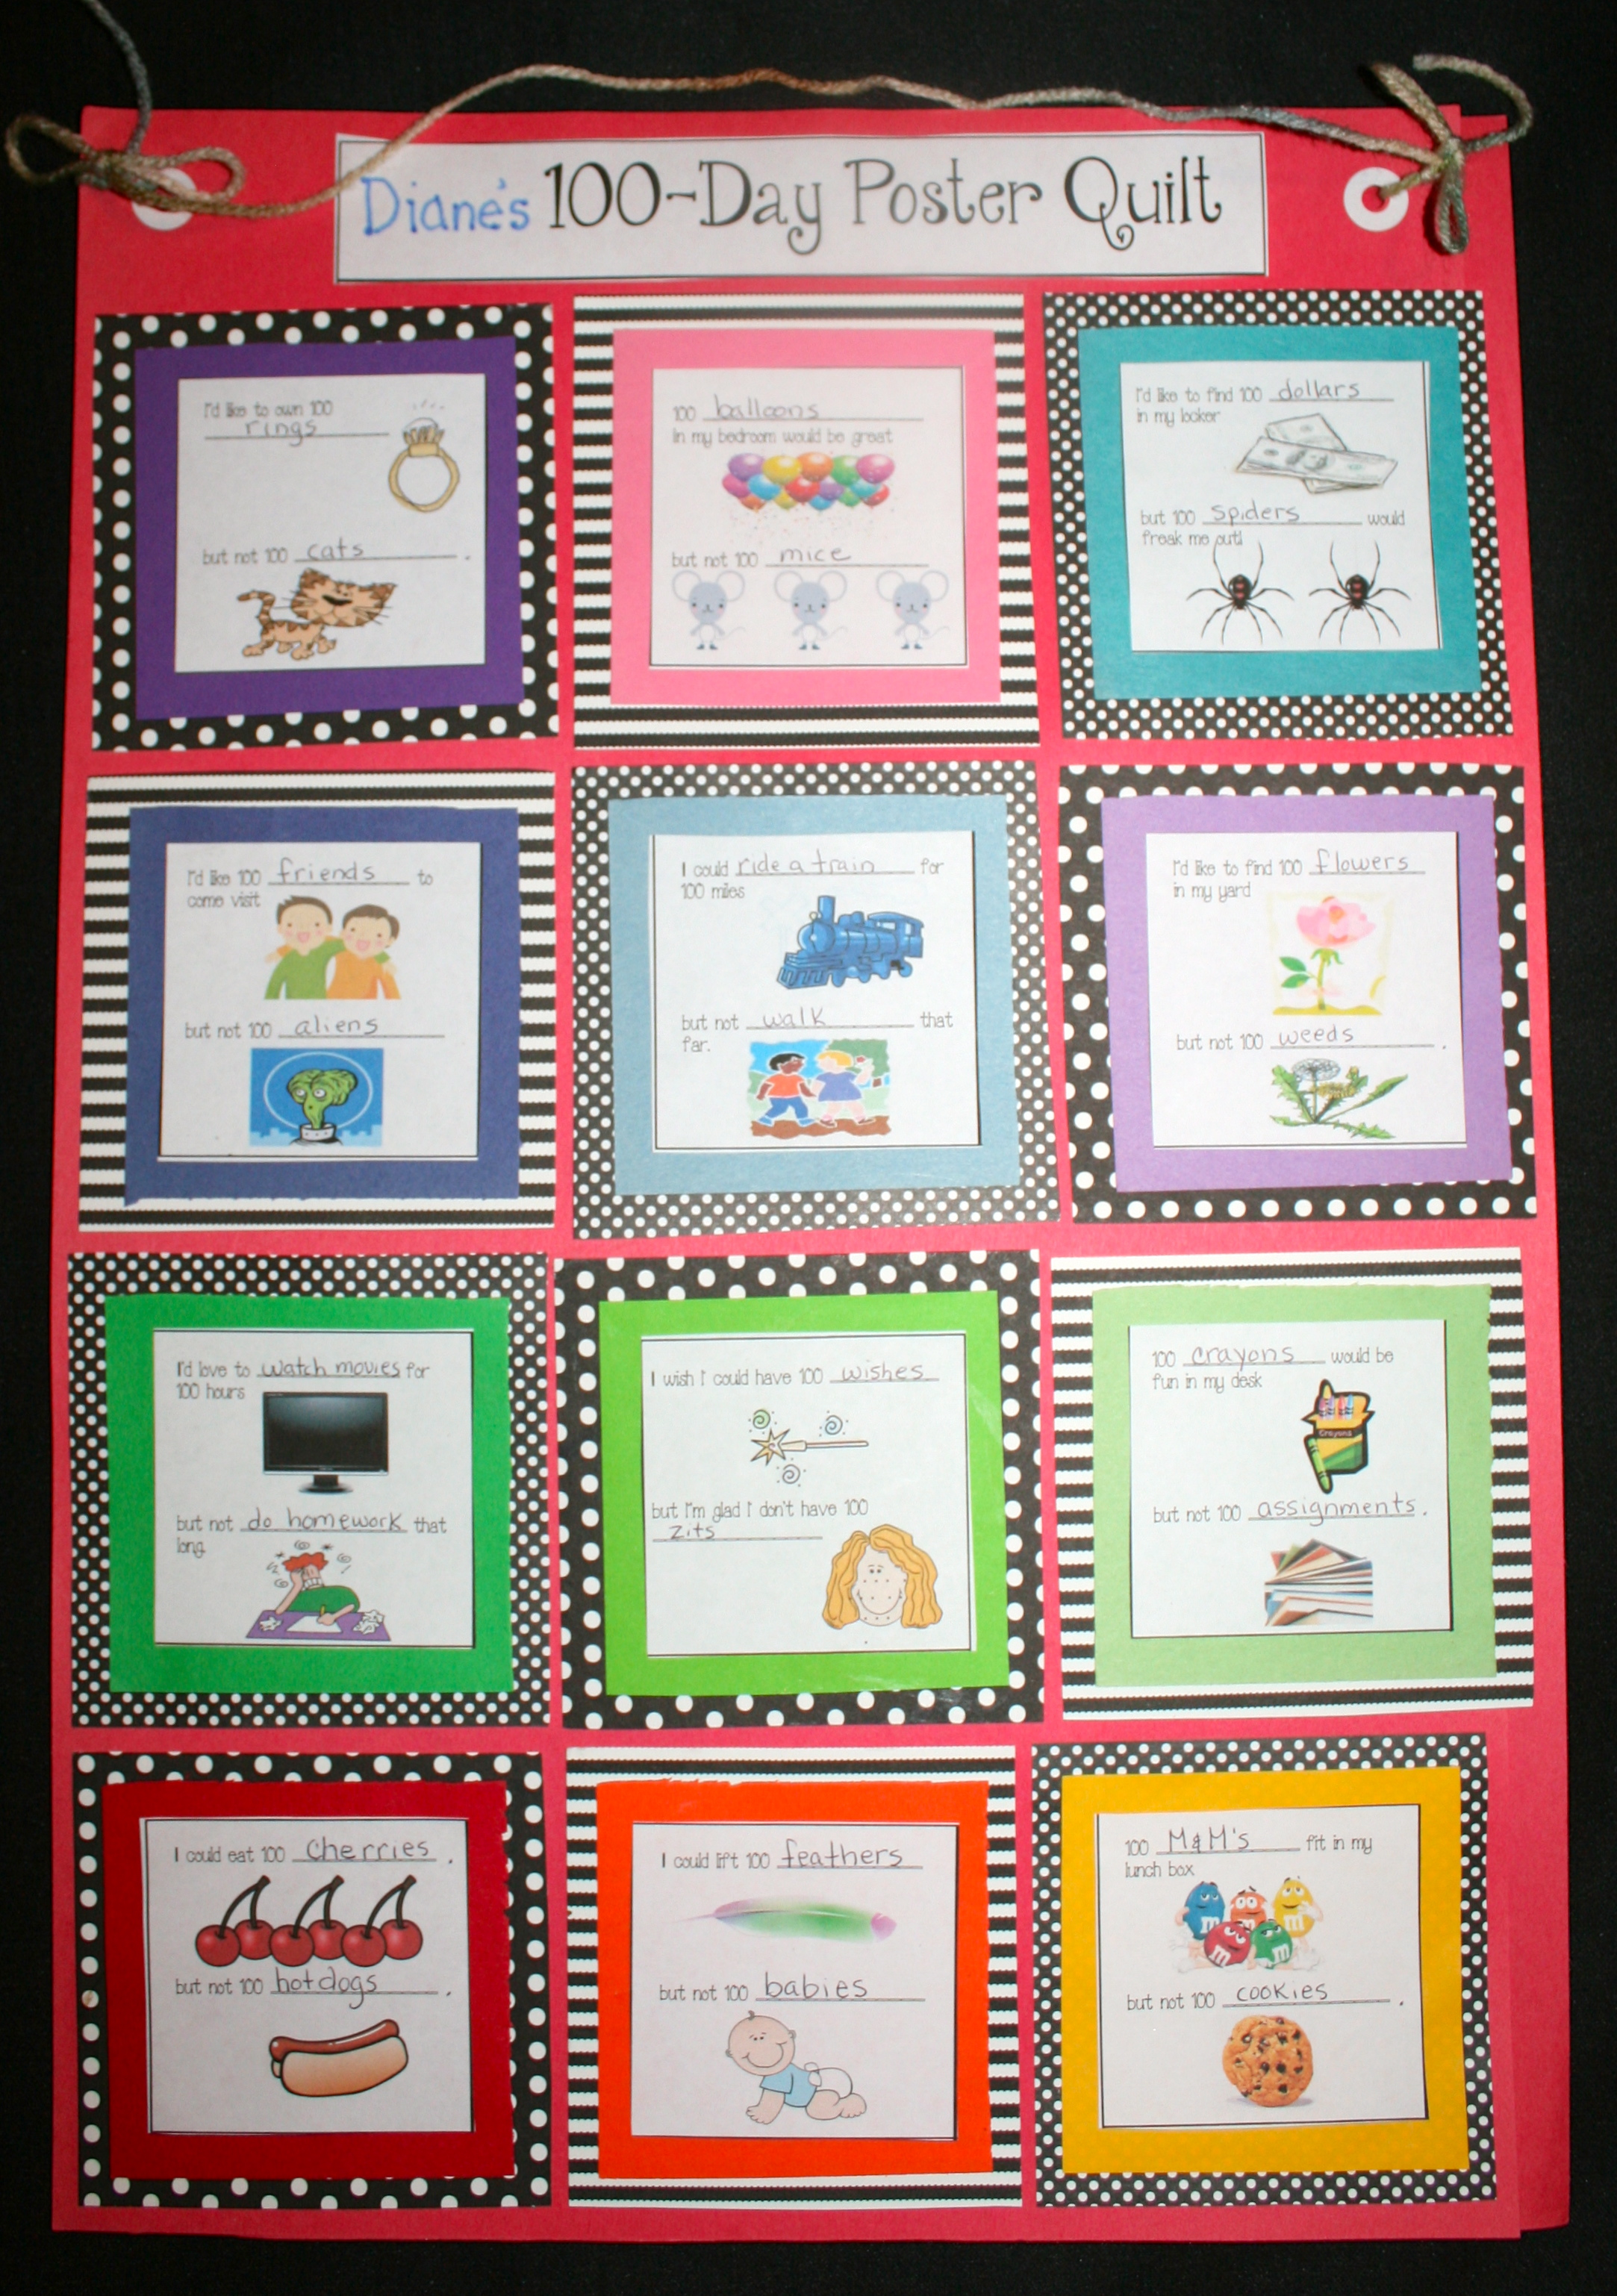 free common core lessons for kindergarten, free common core lessons for 1st grade, 100 day ideas, 100 day lessons, 100 day activities, 100 day writing prompts, 100 day quilt, 100 day posters, winter writing prompts, 100 day bulletin boards, 100 day bulletin board ideas,